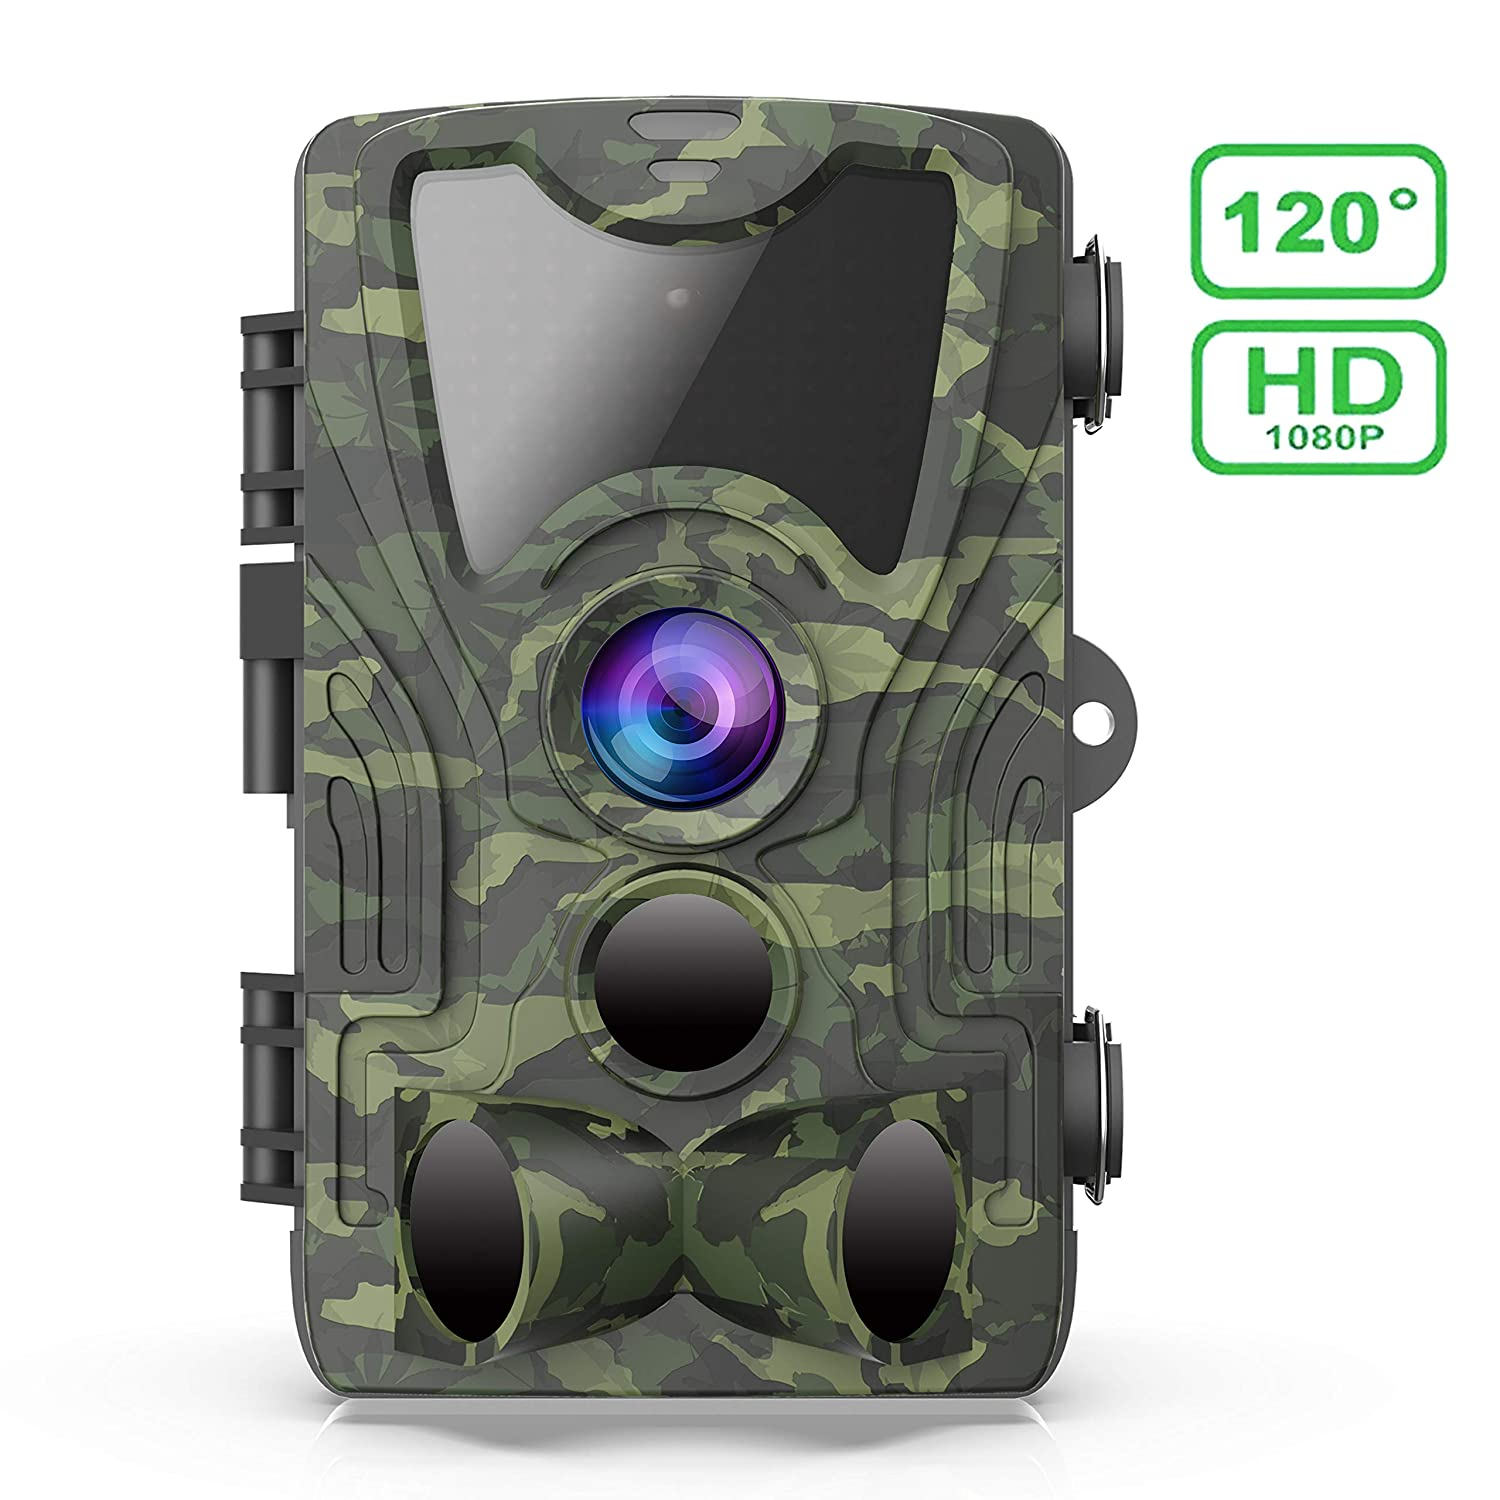 FHDCAM Trail Camera Scouting Hunting Cam with Motion Activated 1080P HD Night Vision 120 Wide Angle Lens IP65 Waterproof Game Camera for Wildlife  New Version